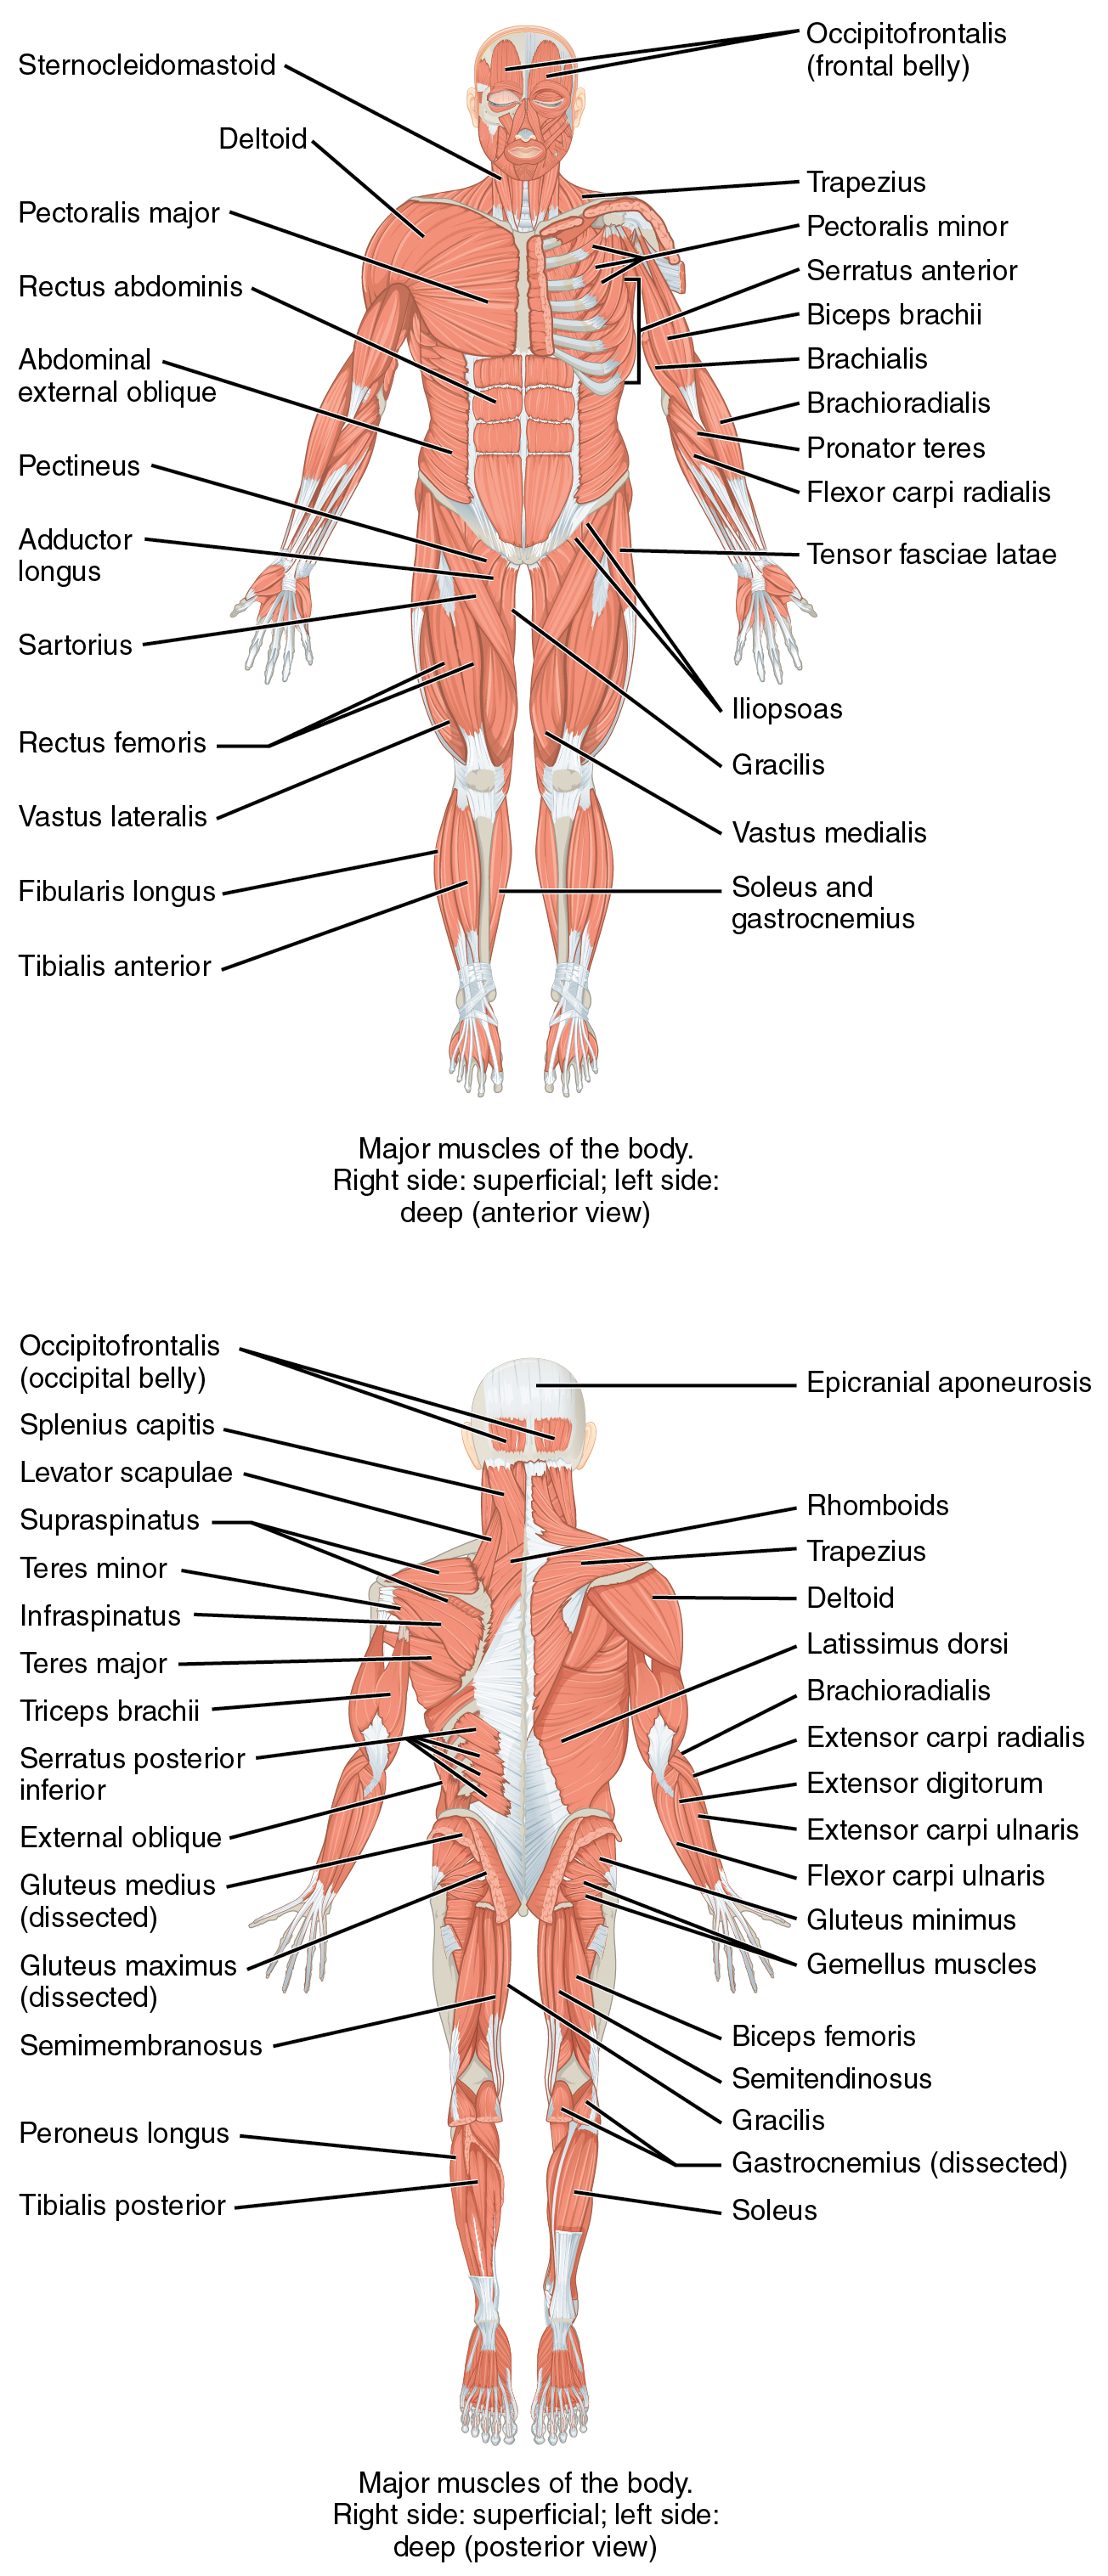 an overview of the muscle system of the human body The human brain is the body's control center, receiving and sending signals to other organs through the nervous system and through secreted hormones it is responsible for our thoughts, feelings .